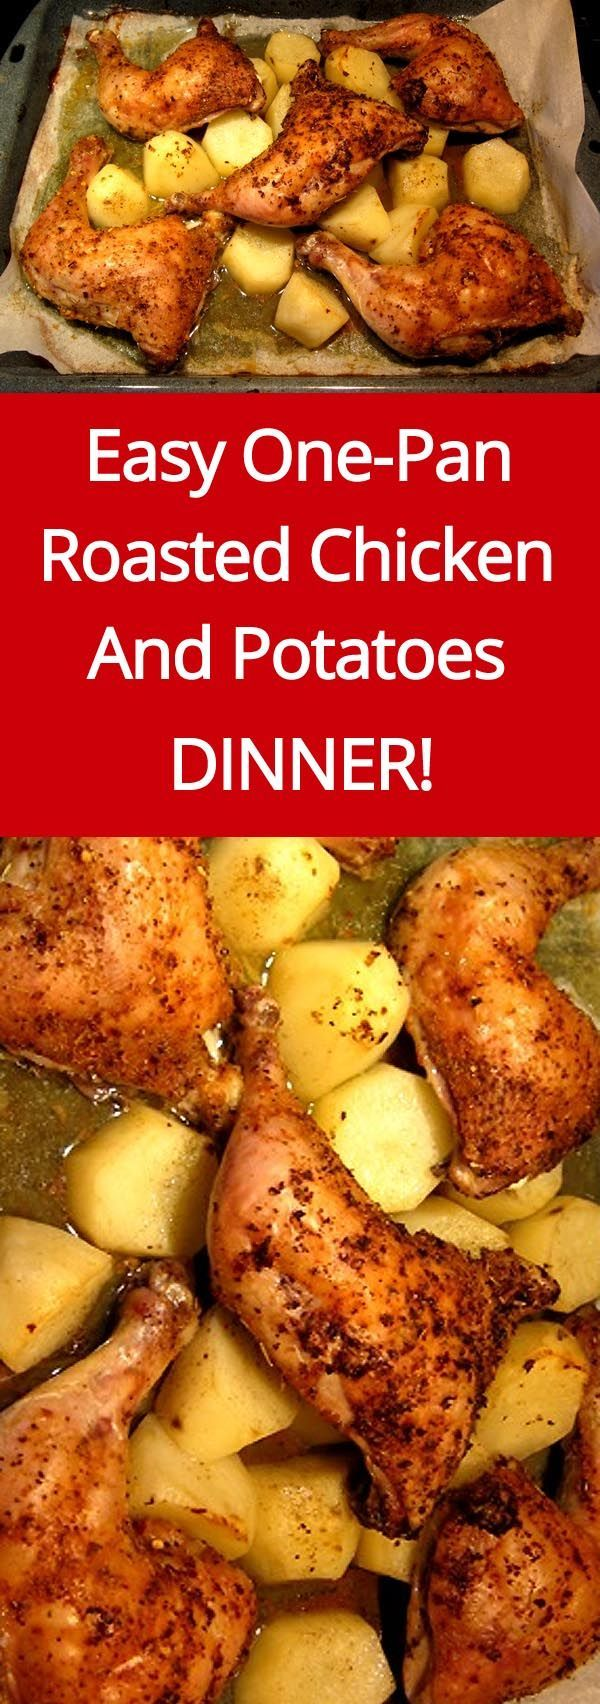 Easy One-Pan Roasted Chicken And Potatoes Recipe | MelanieCooks.com